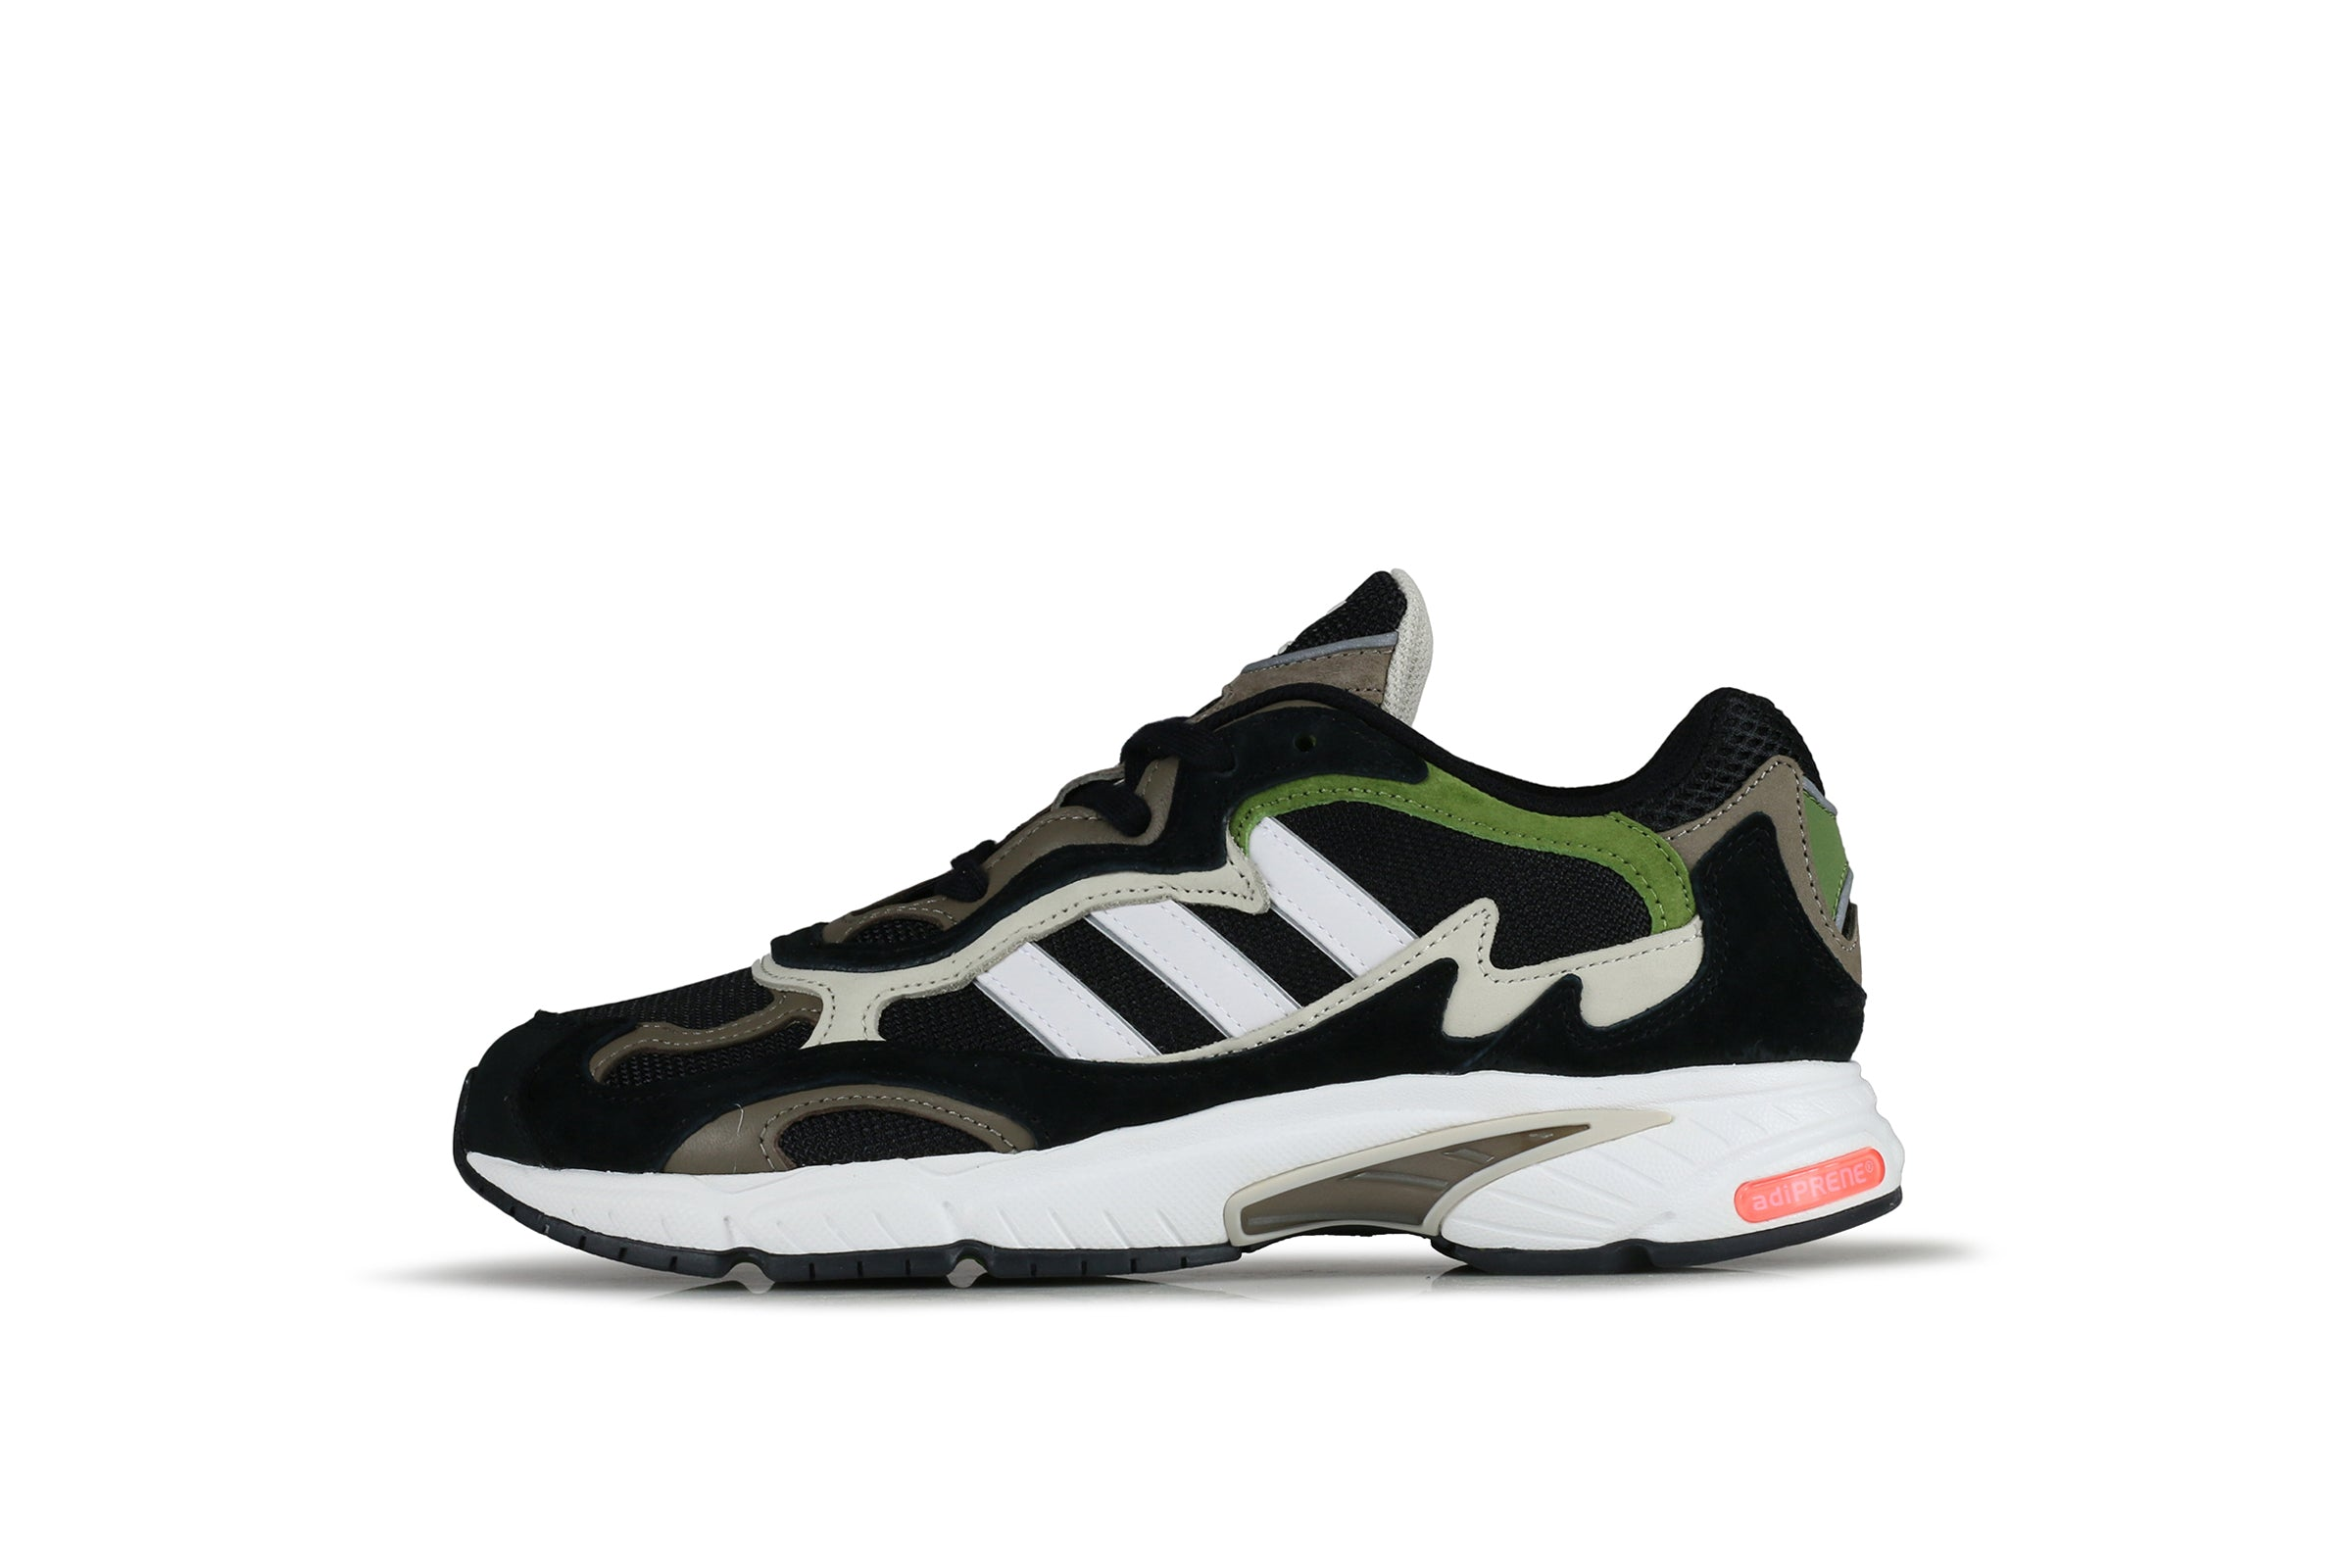 ADIDAS ORIGINALS ZX 750 Mens Trainers Running Shoes Navy Sneakers UK Size 7 11